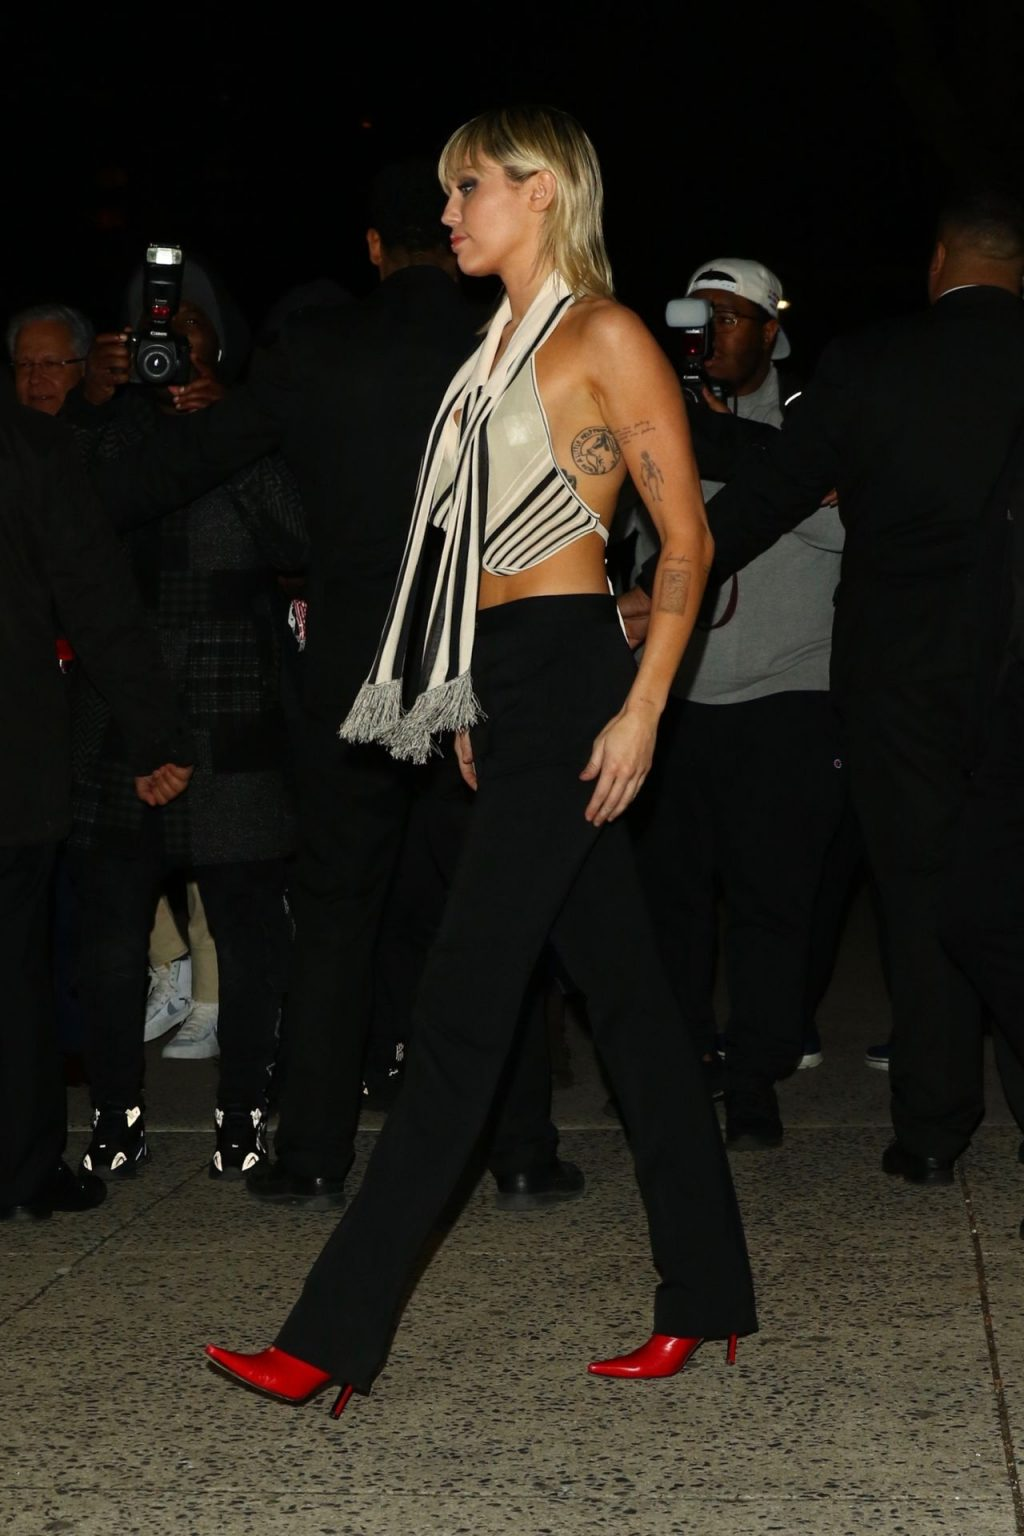 Miley Cyrus Has a Nip Slip in a Silk Top Arriving at The Bowery Hotel (61 Photos)